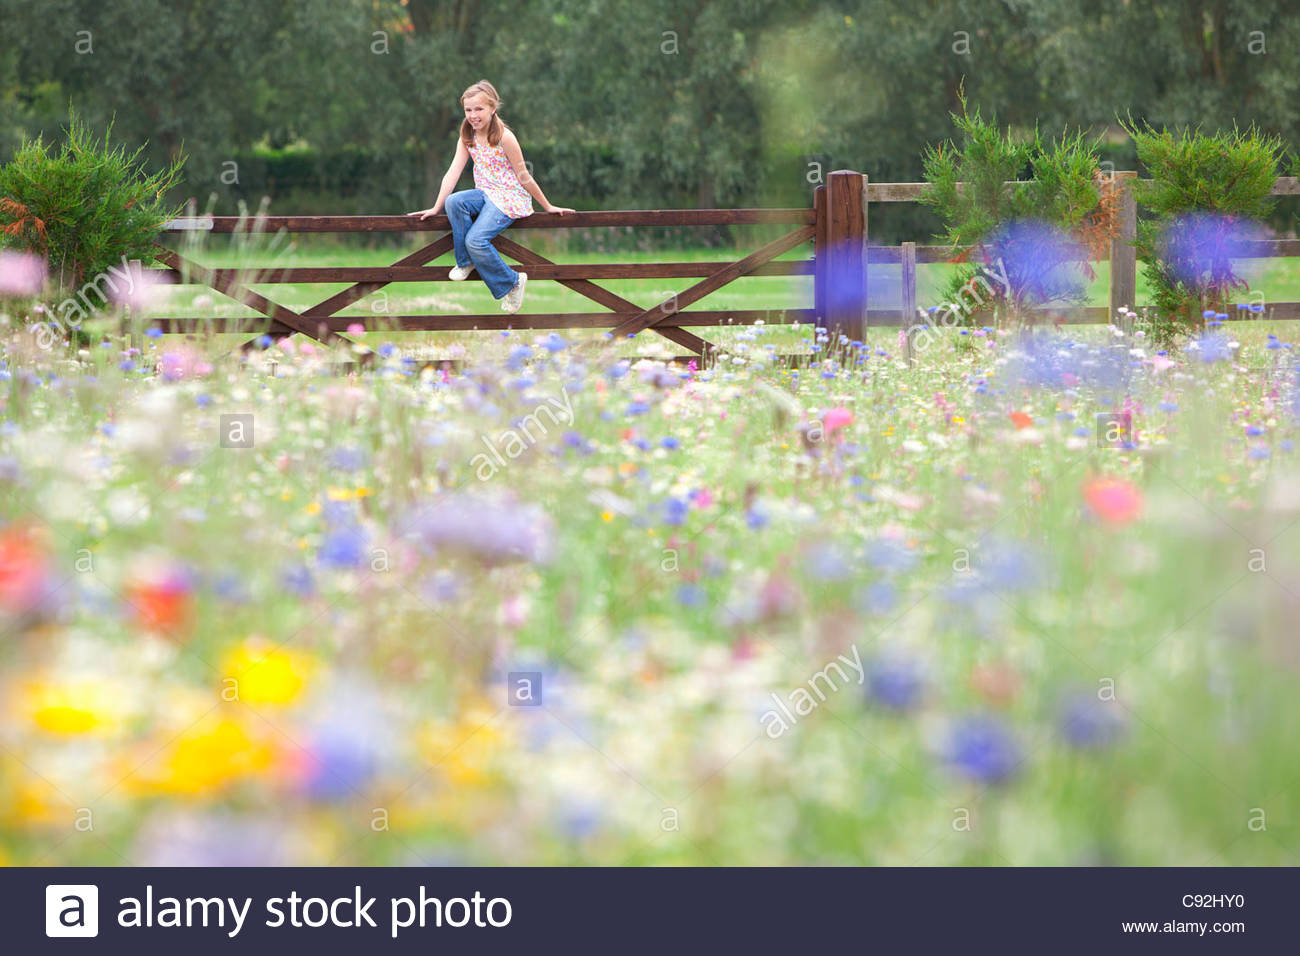 Girl sitting on fence in wildflower field - Stock Image